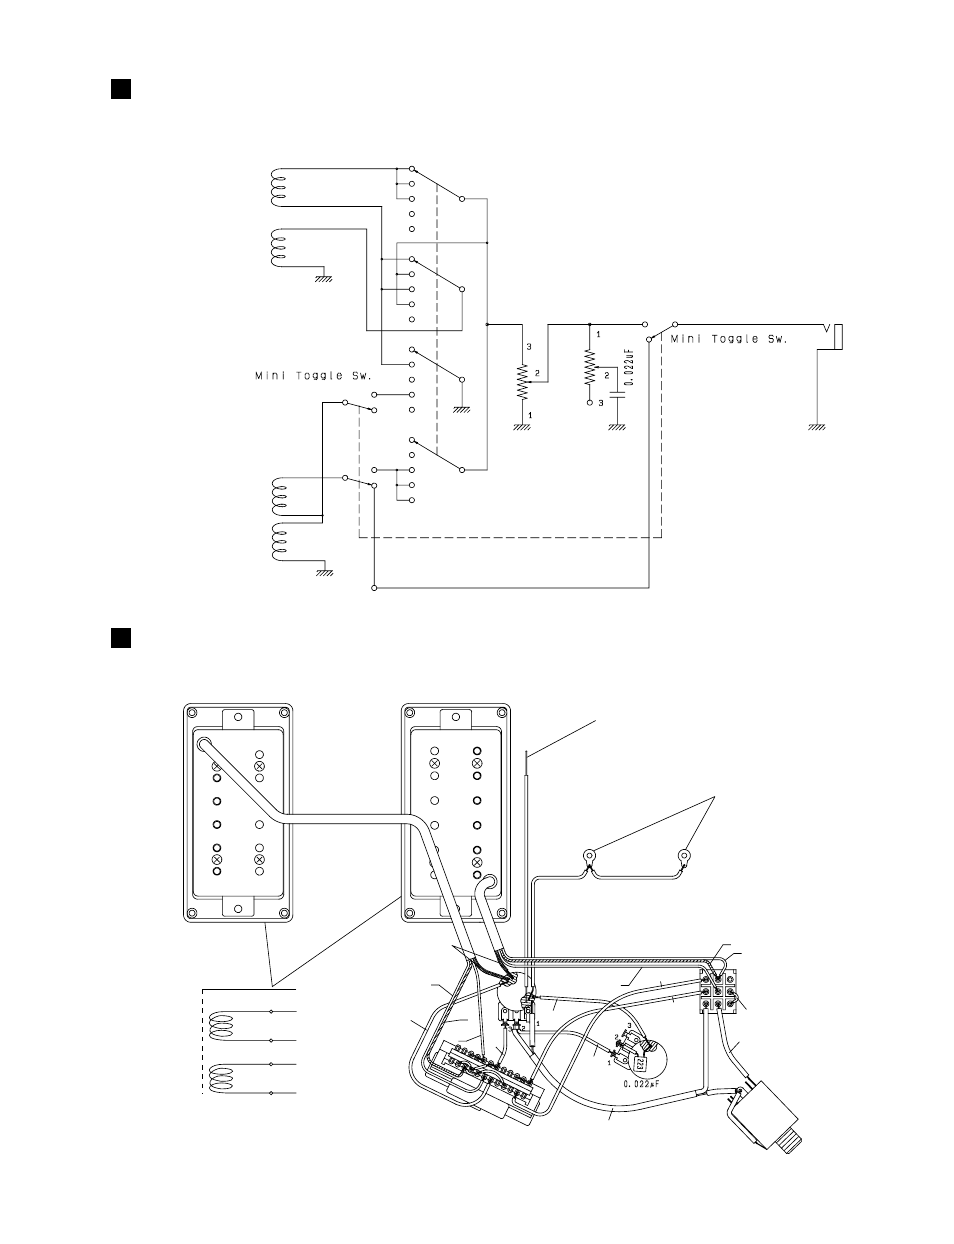 yamaha guitar wiring diagram yamaha image wiring yamaha rgx electric guitar wiring diagram 110 powerdrive 2 wiring on yamaha guitar wiring diagram